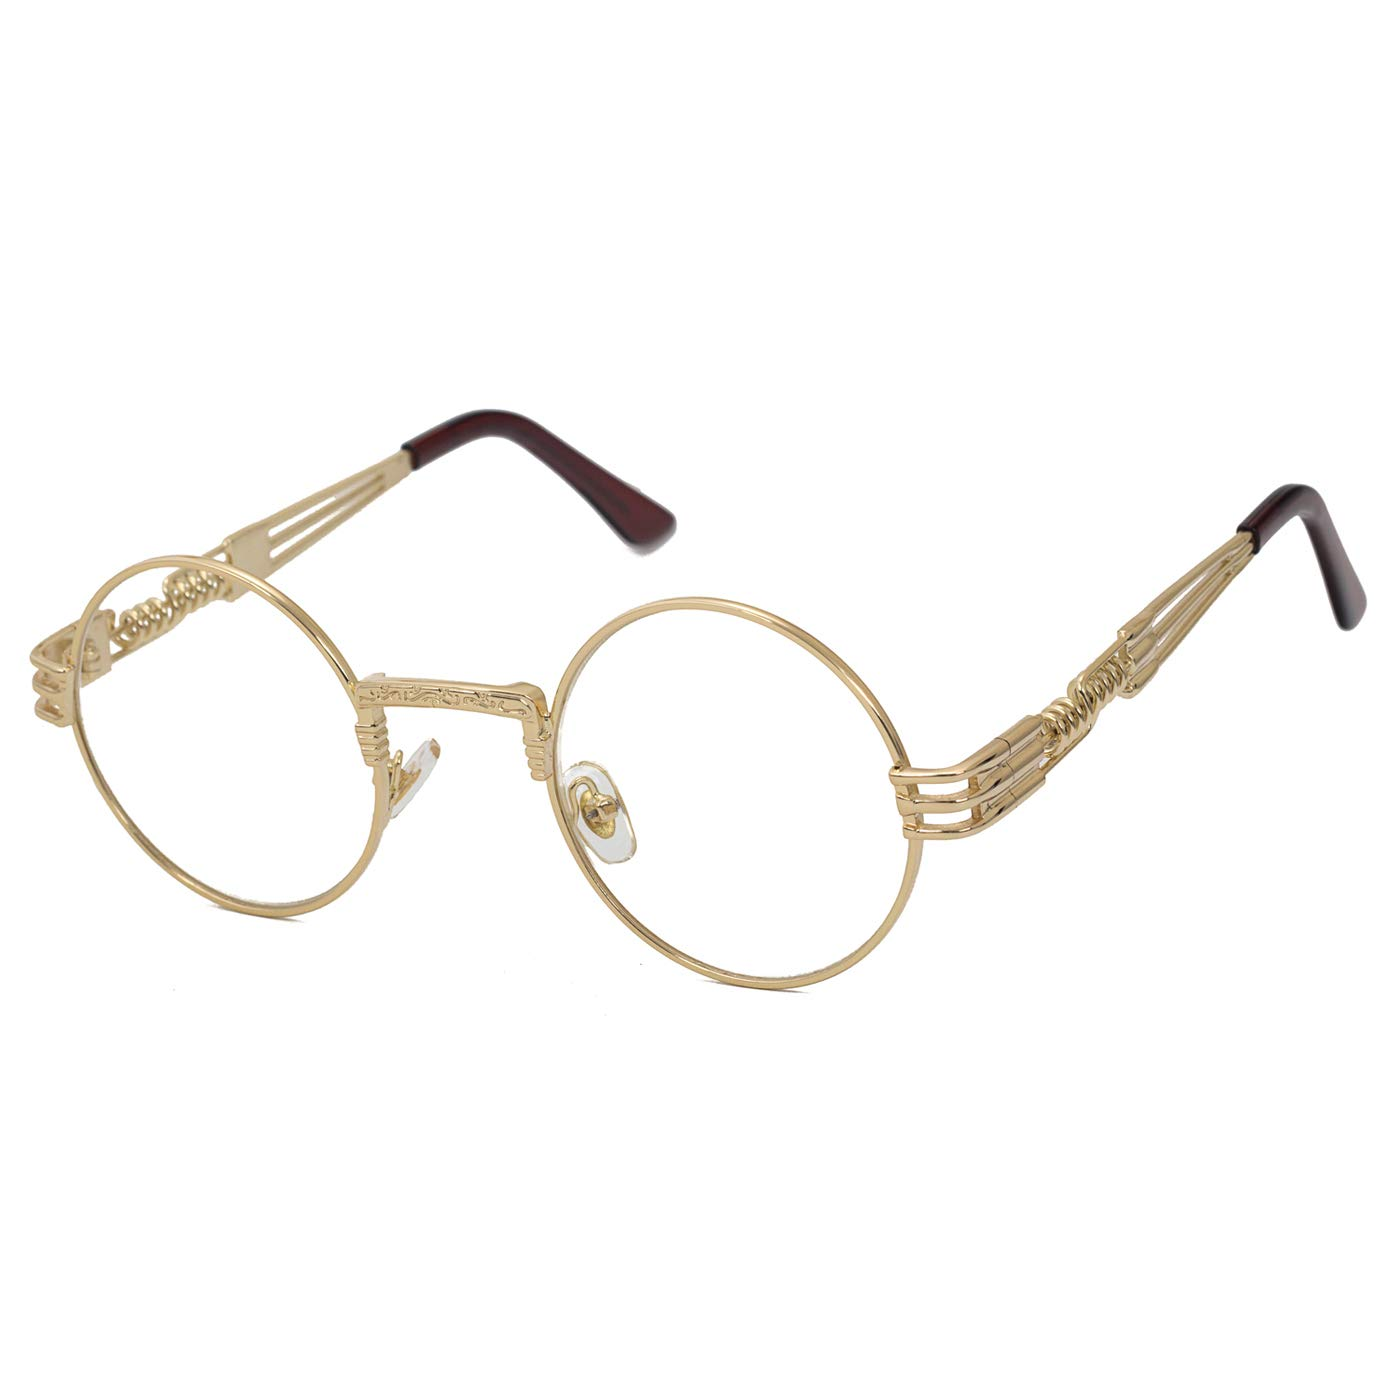 85c1c3bf342 Details about Pro Acme John Lennon Metal Spring Frame Round Steampunk Clear  Lens Glasses (Gold